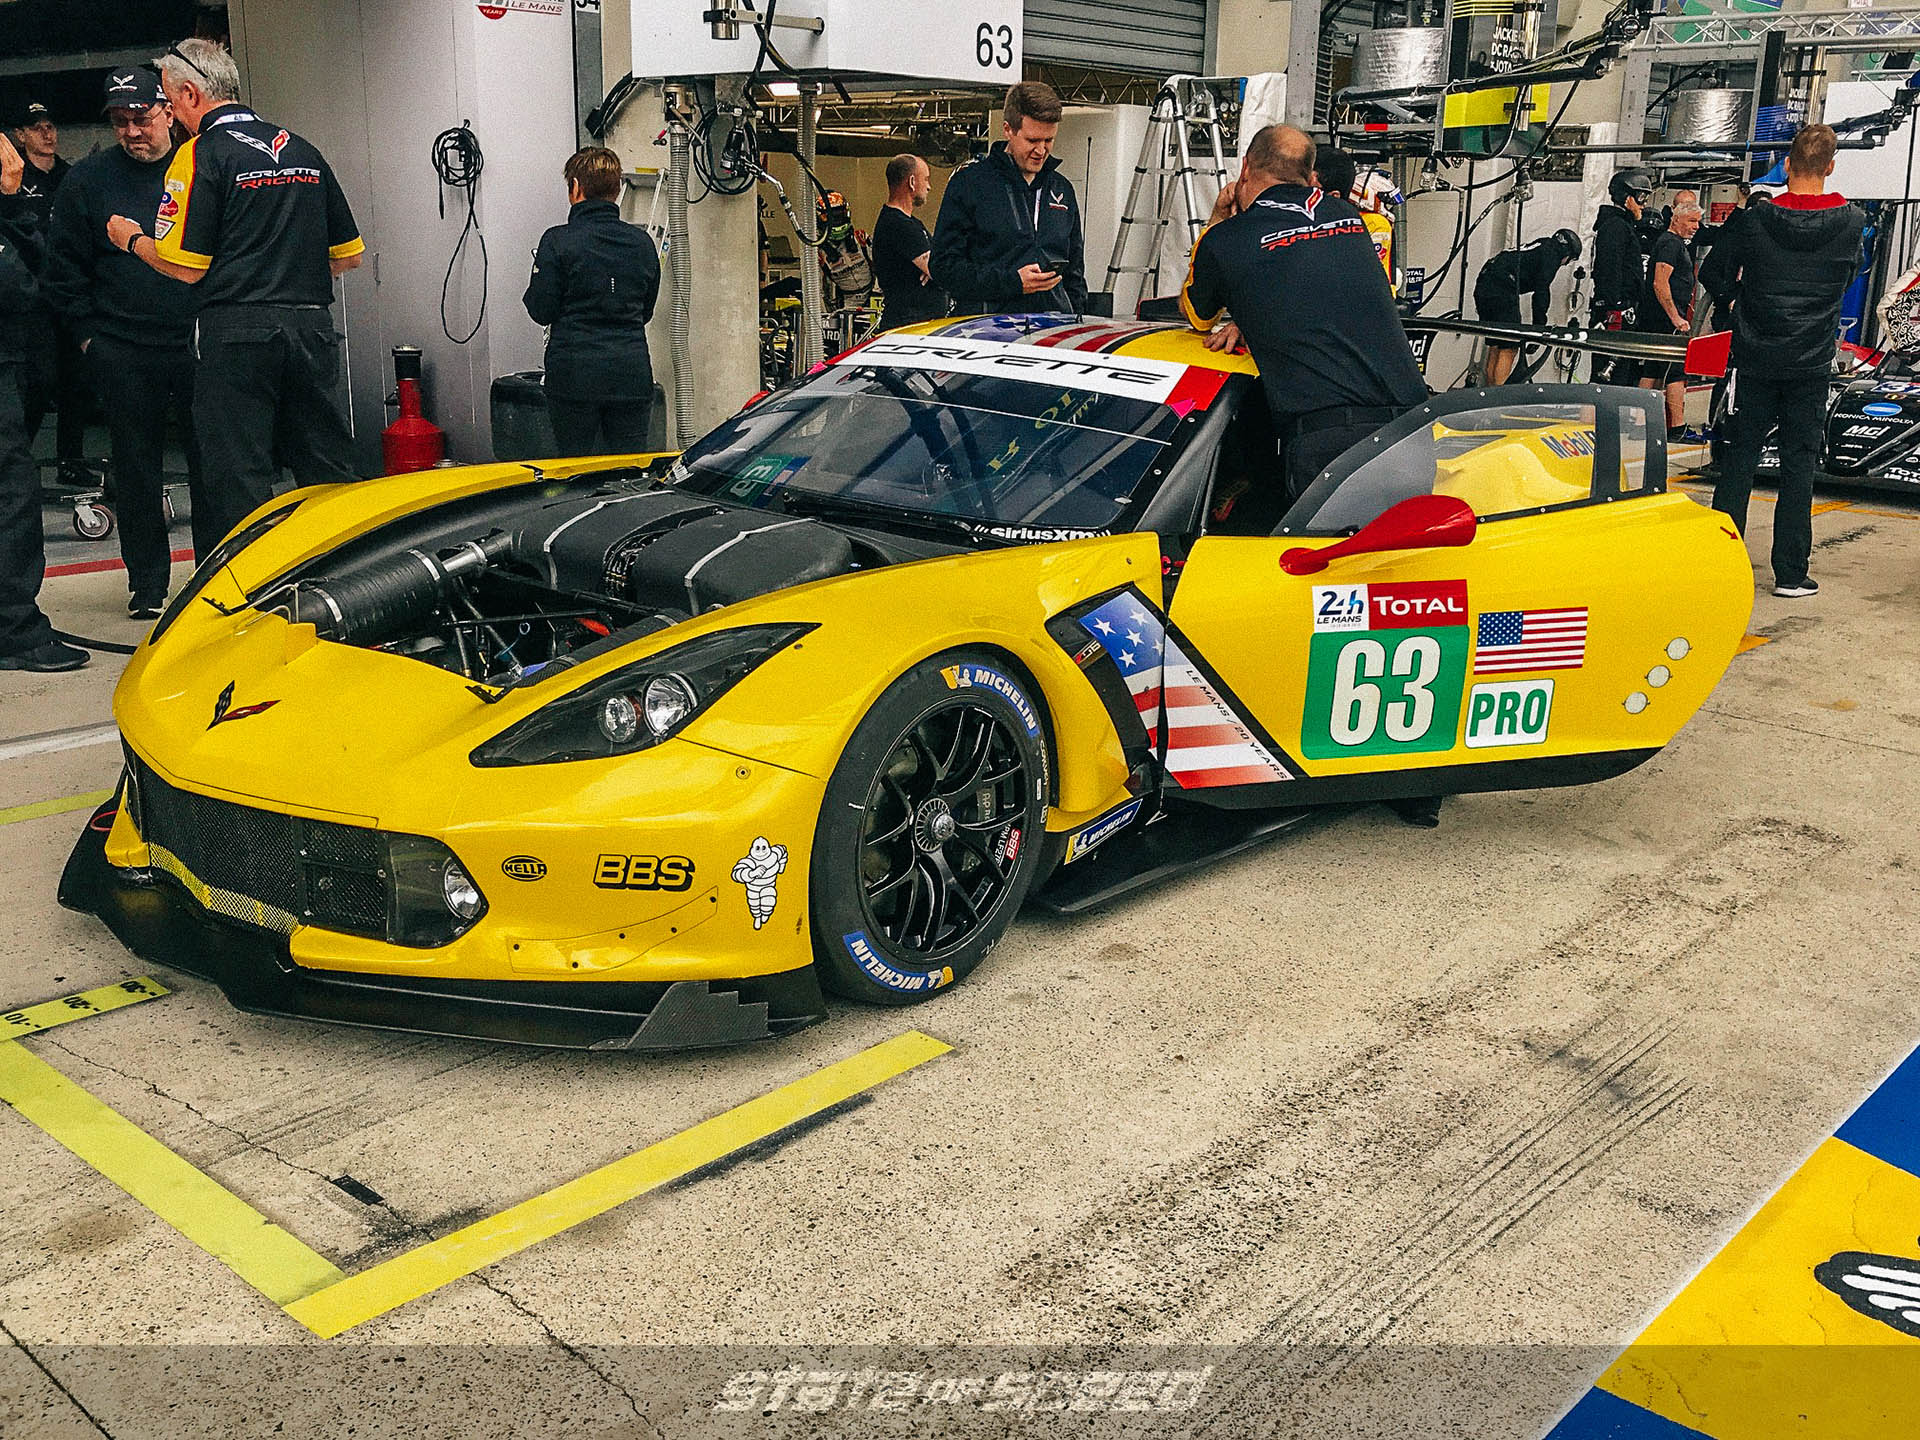 #63 Corvette in pits at Le Mans